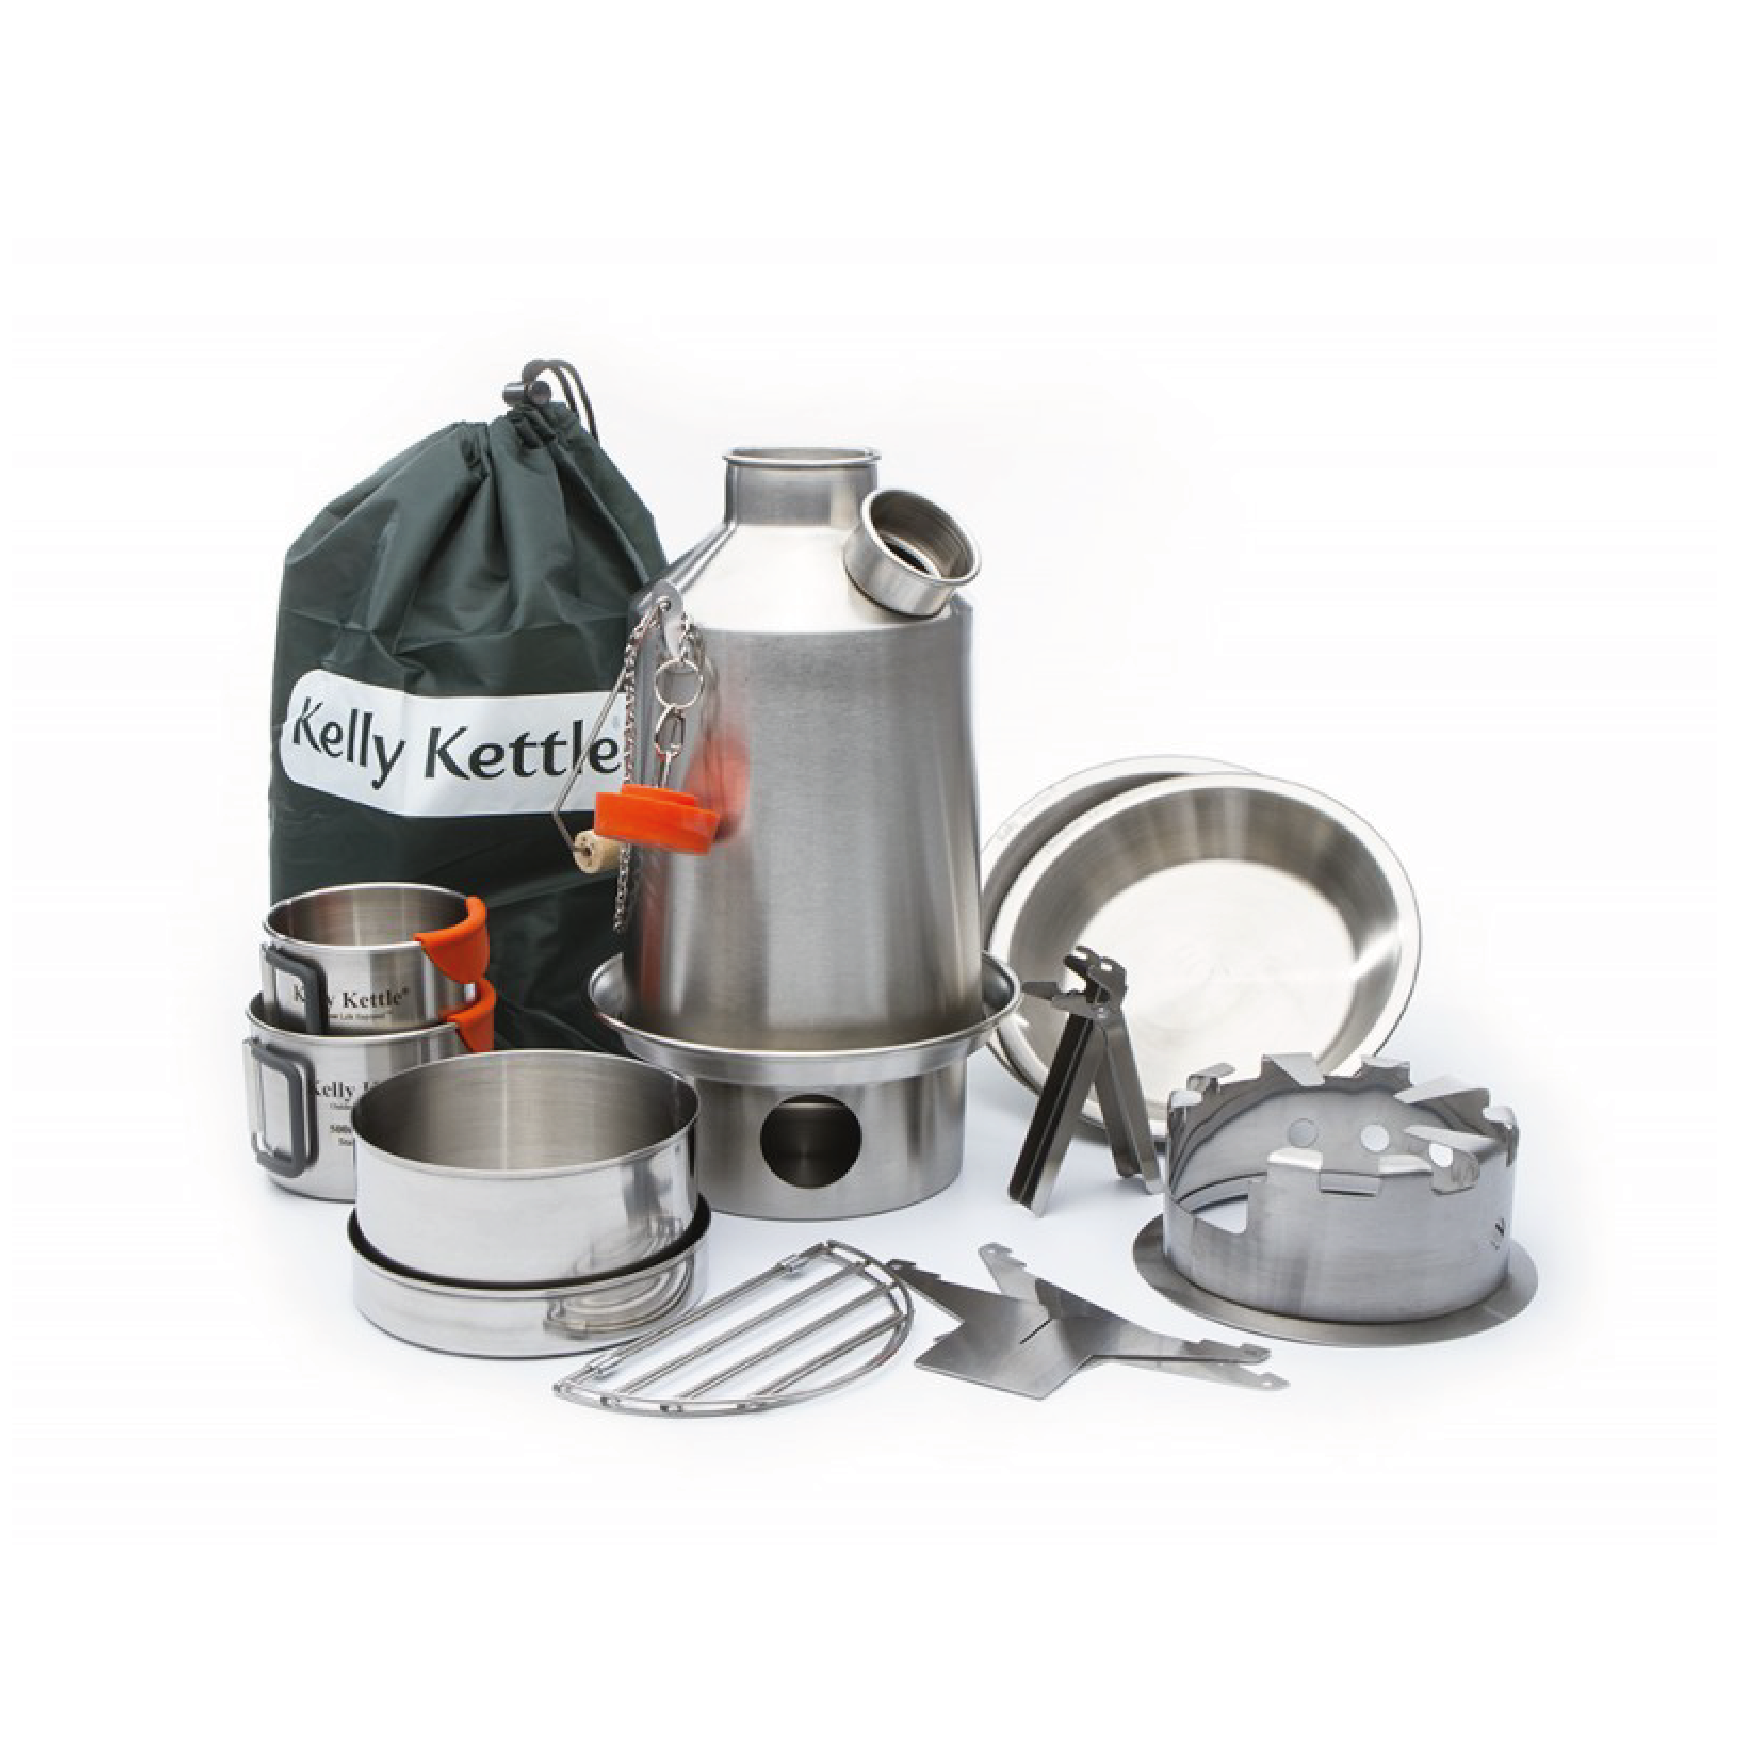 ULTIMATE SCOUT KIT    By  Kelly Kettle     The ultimate outdoor cooking kit to own for the budding campsite chef.    SHOP NOW          £90   SOLD OUT